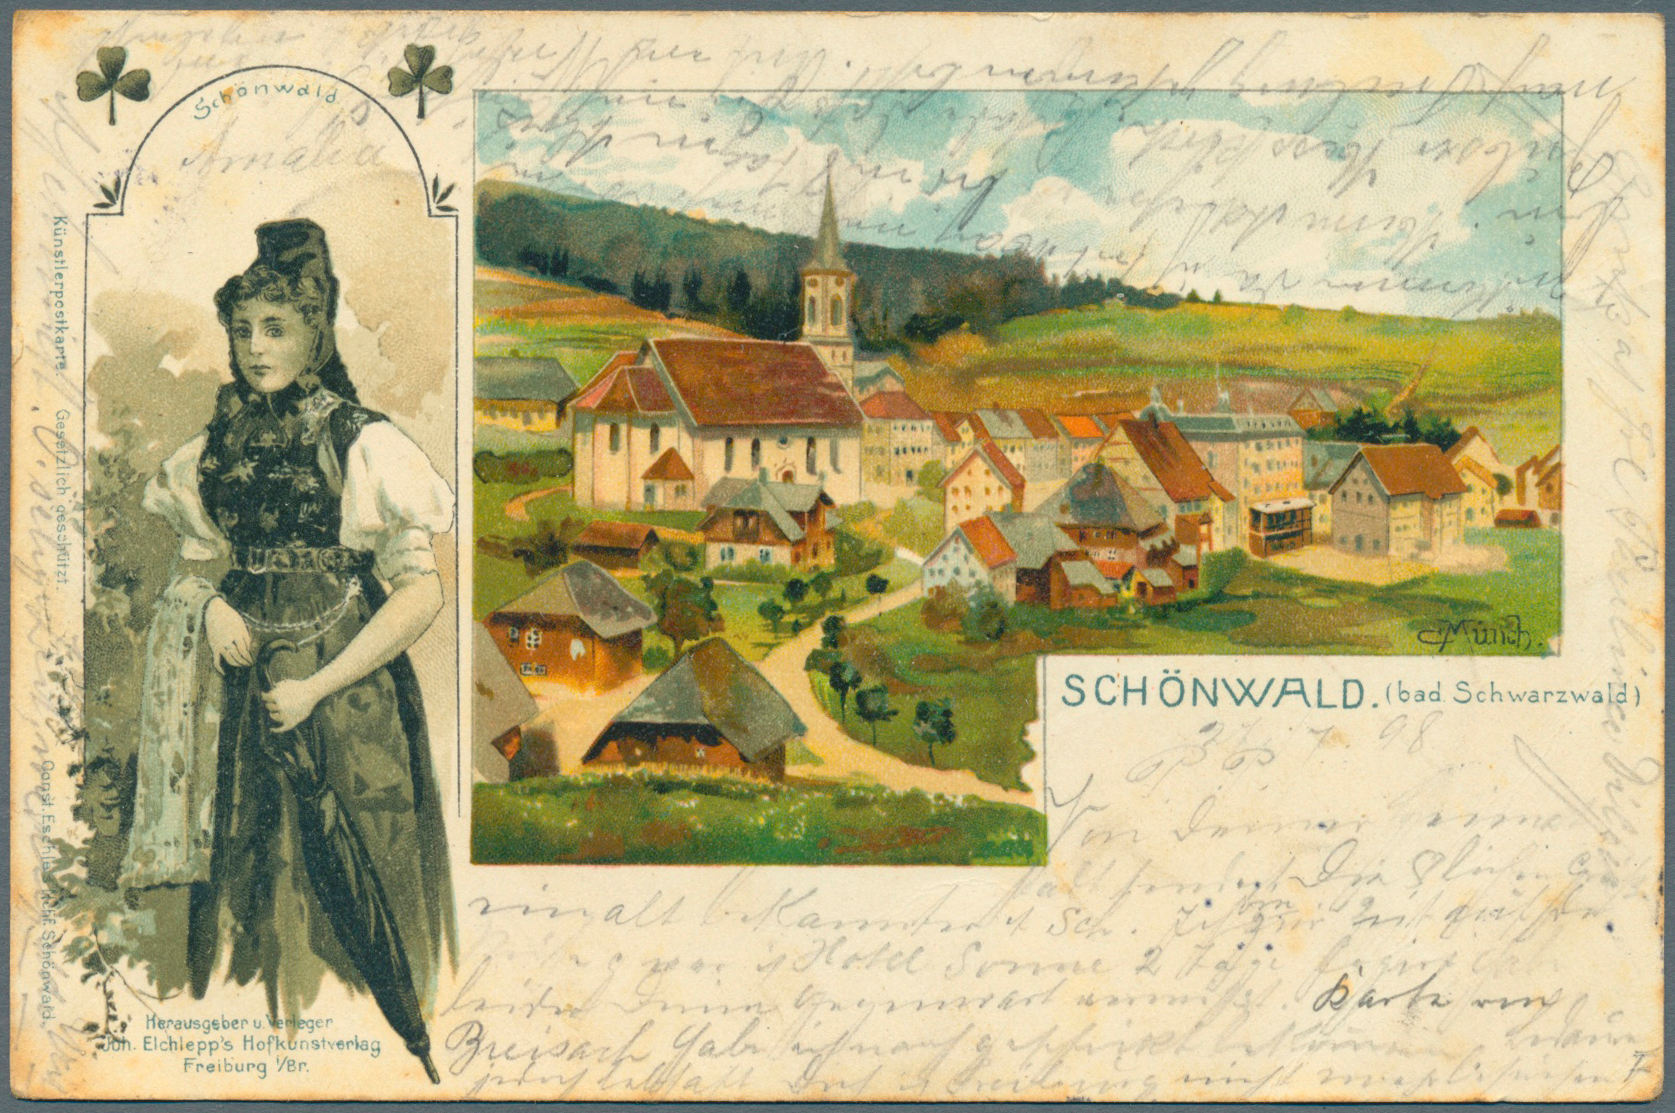 Lot 29020 - nachlässe  -  Auktionshaus Christoph Gärtner GmbH & Co. KG Auction #40 Collections Germany, Wunderkartons